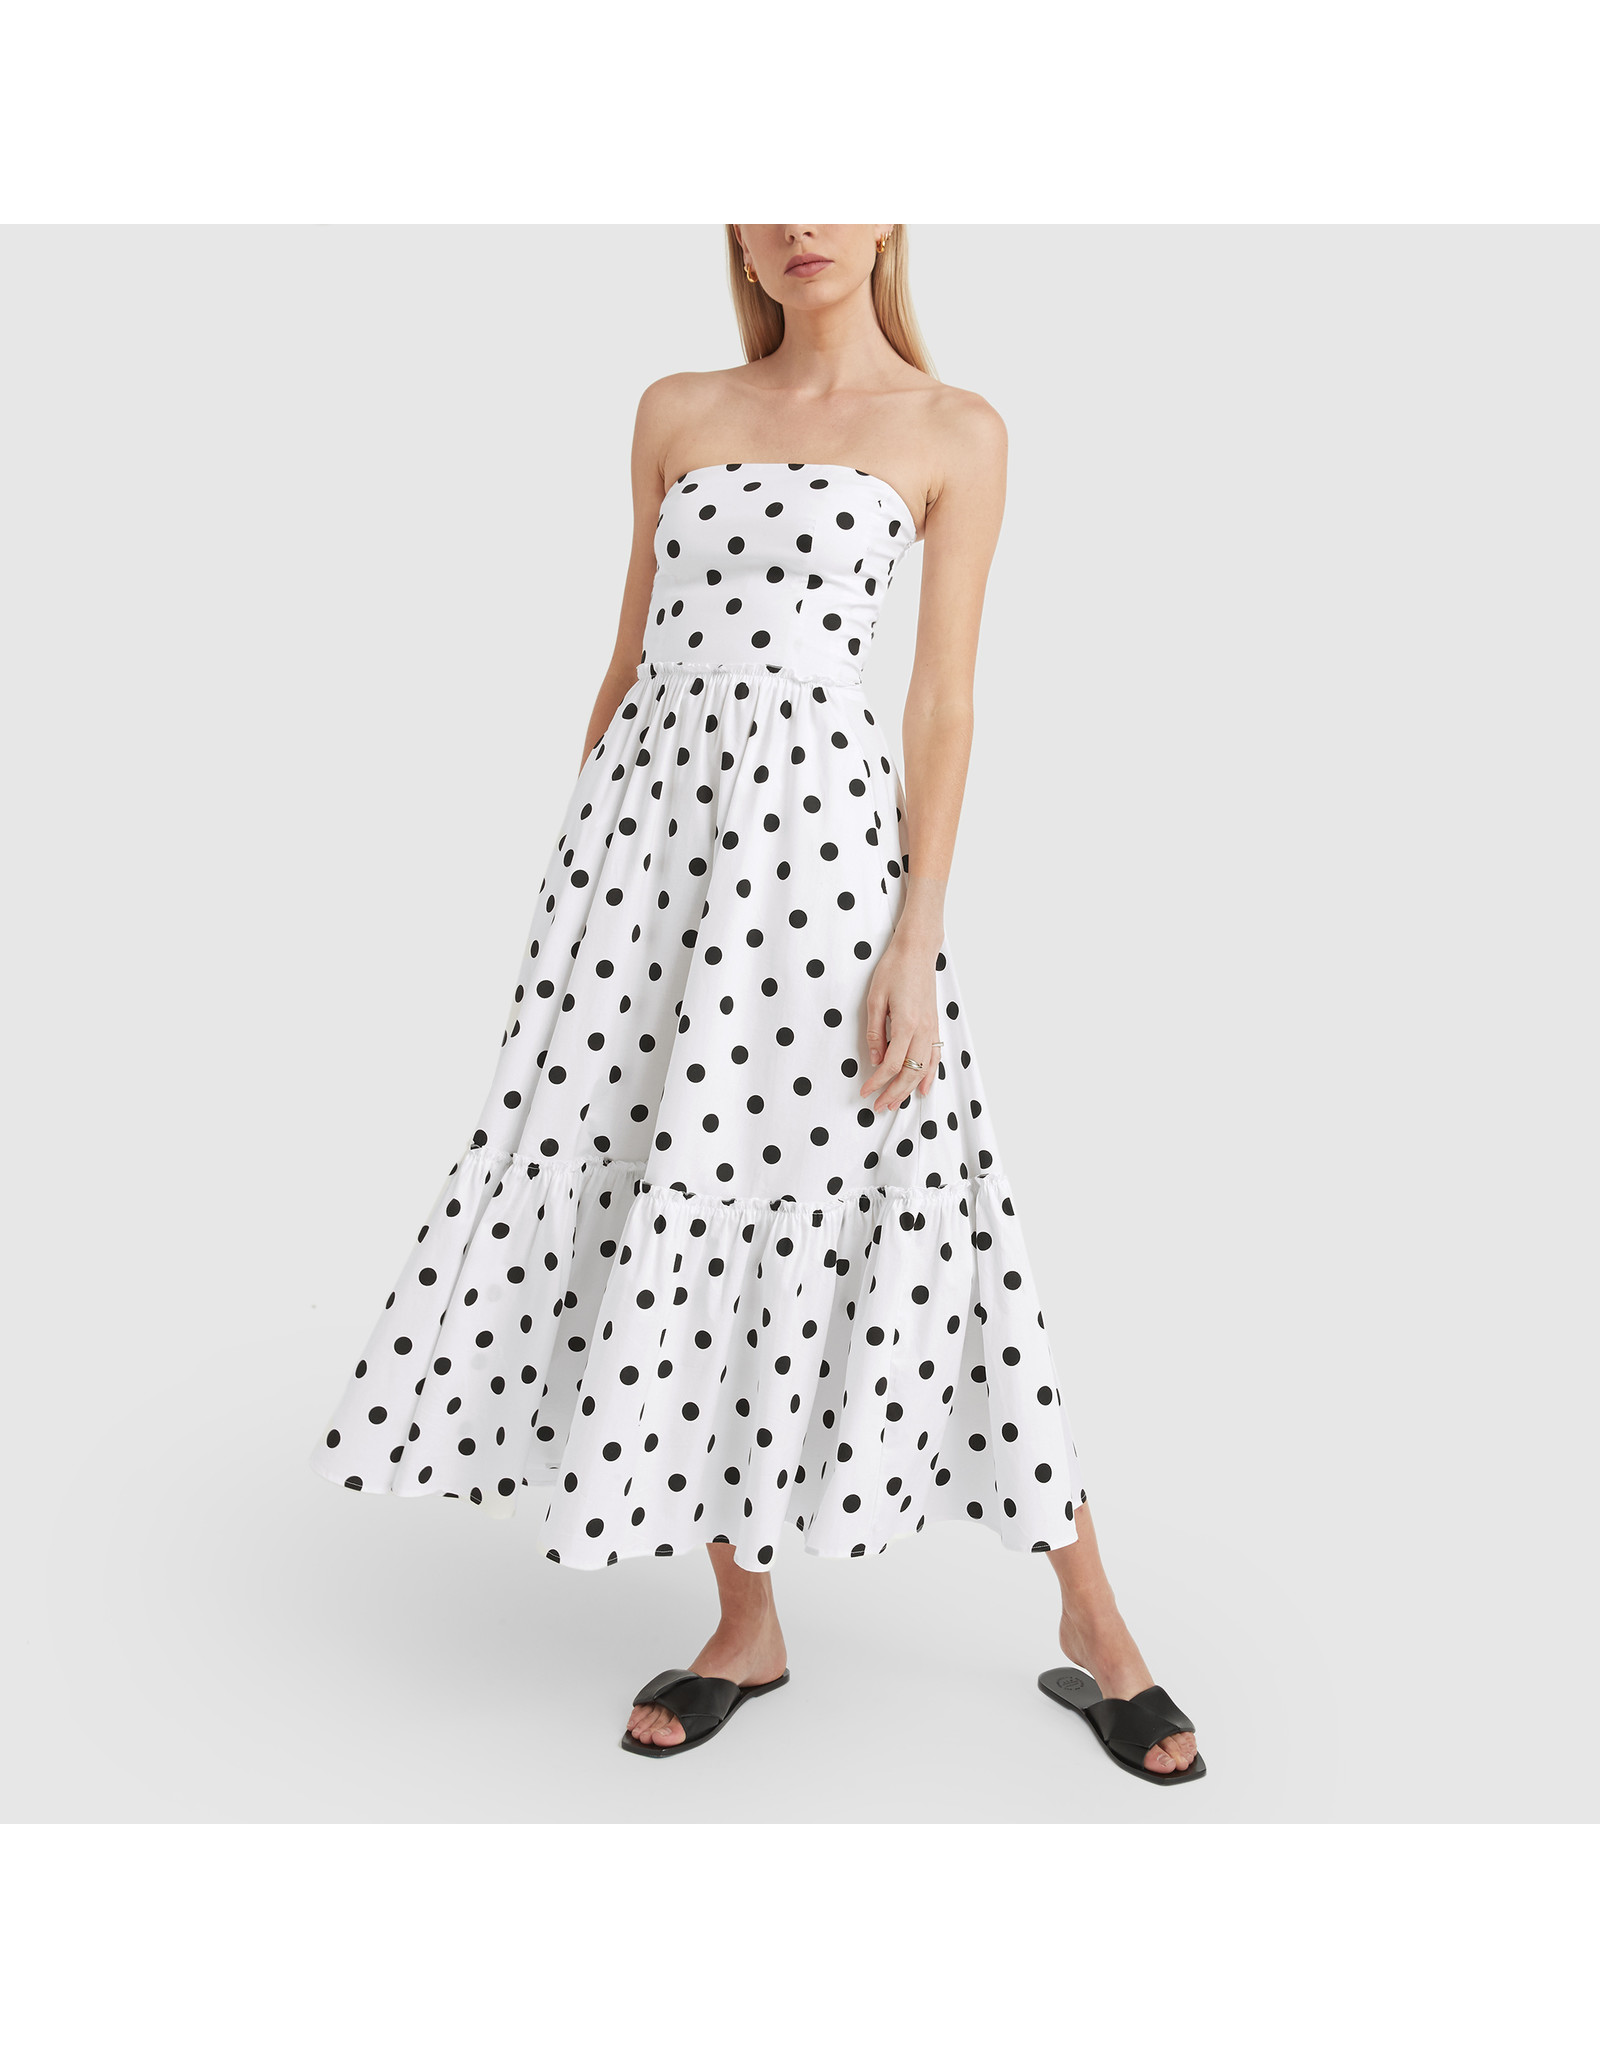 G. Label Zera Strapless Tiered Dress (Color: White & Black Dot Print, Size: 2)